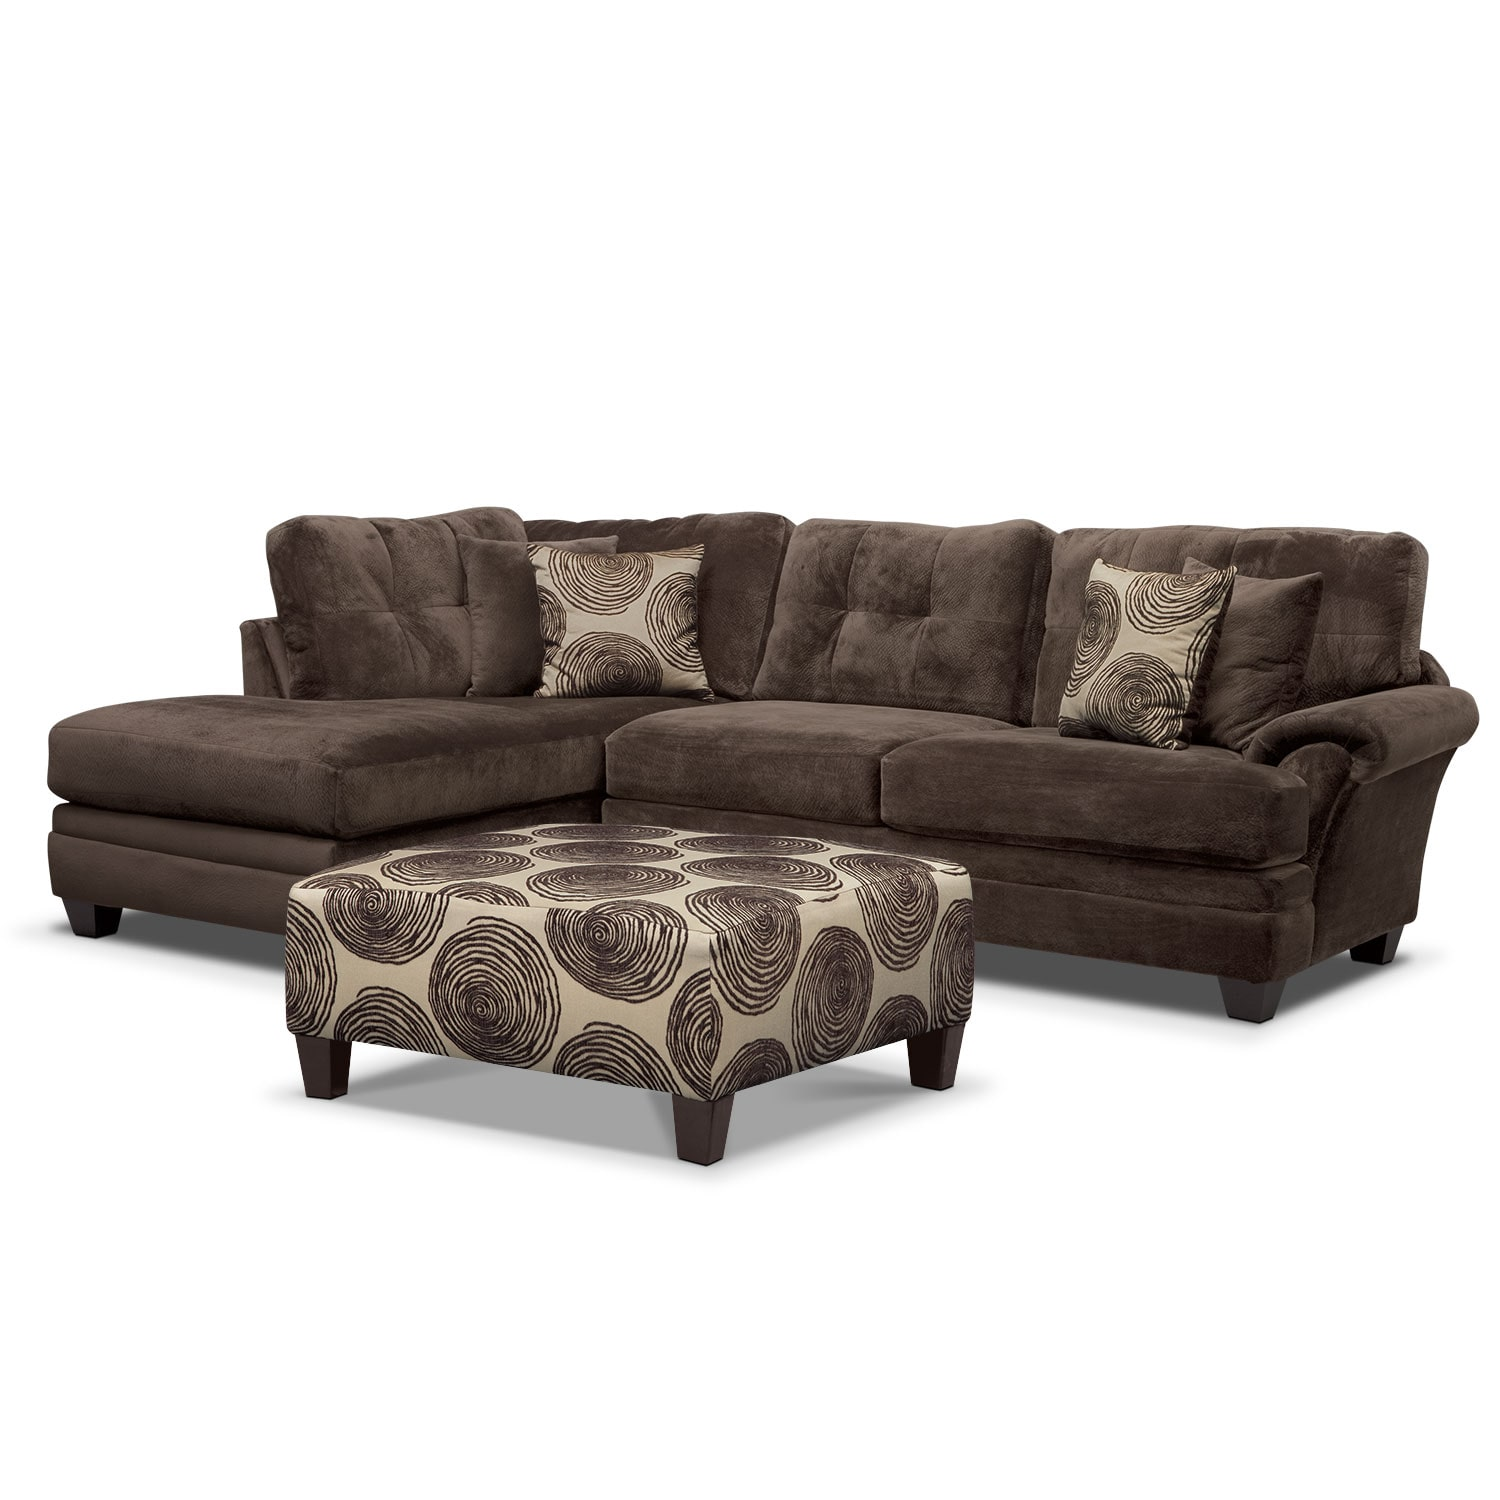 Cordelle 2-Piece Left-Facing Chaise Sectional Plus FREE Cocktail Ottoman - Chocolate